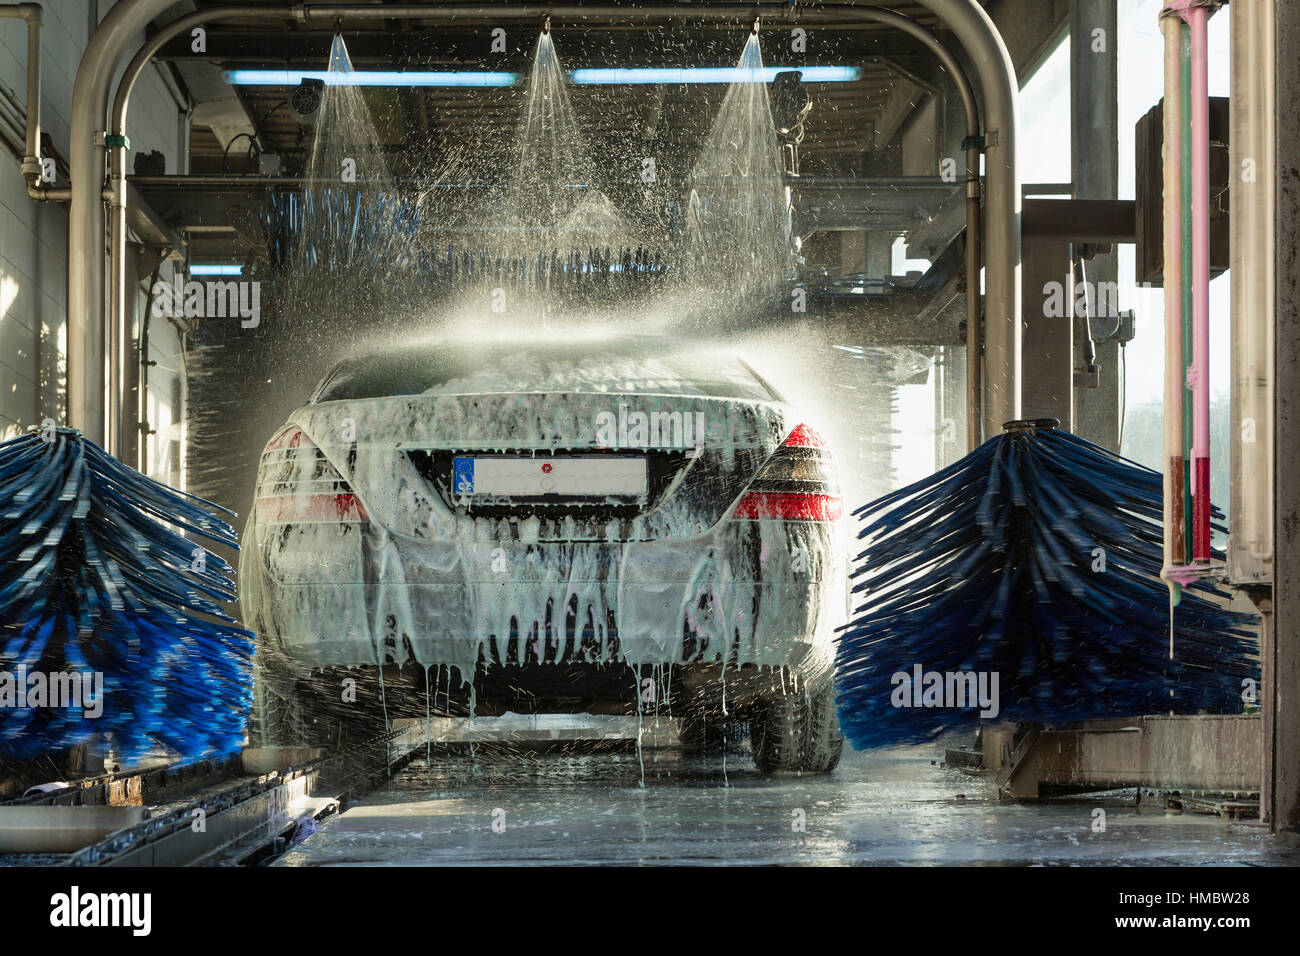 car wash, car wash foam water, Automatic car wash in action - Stock Image